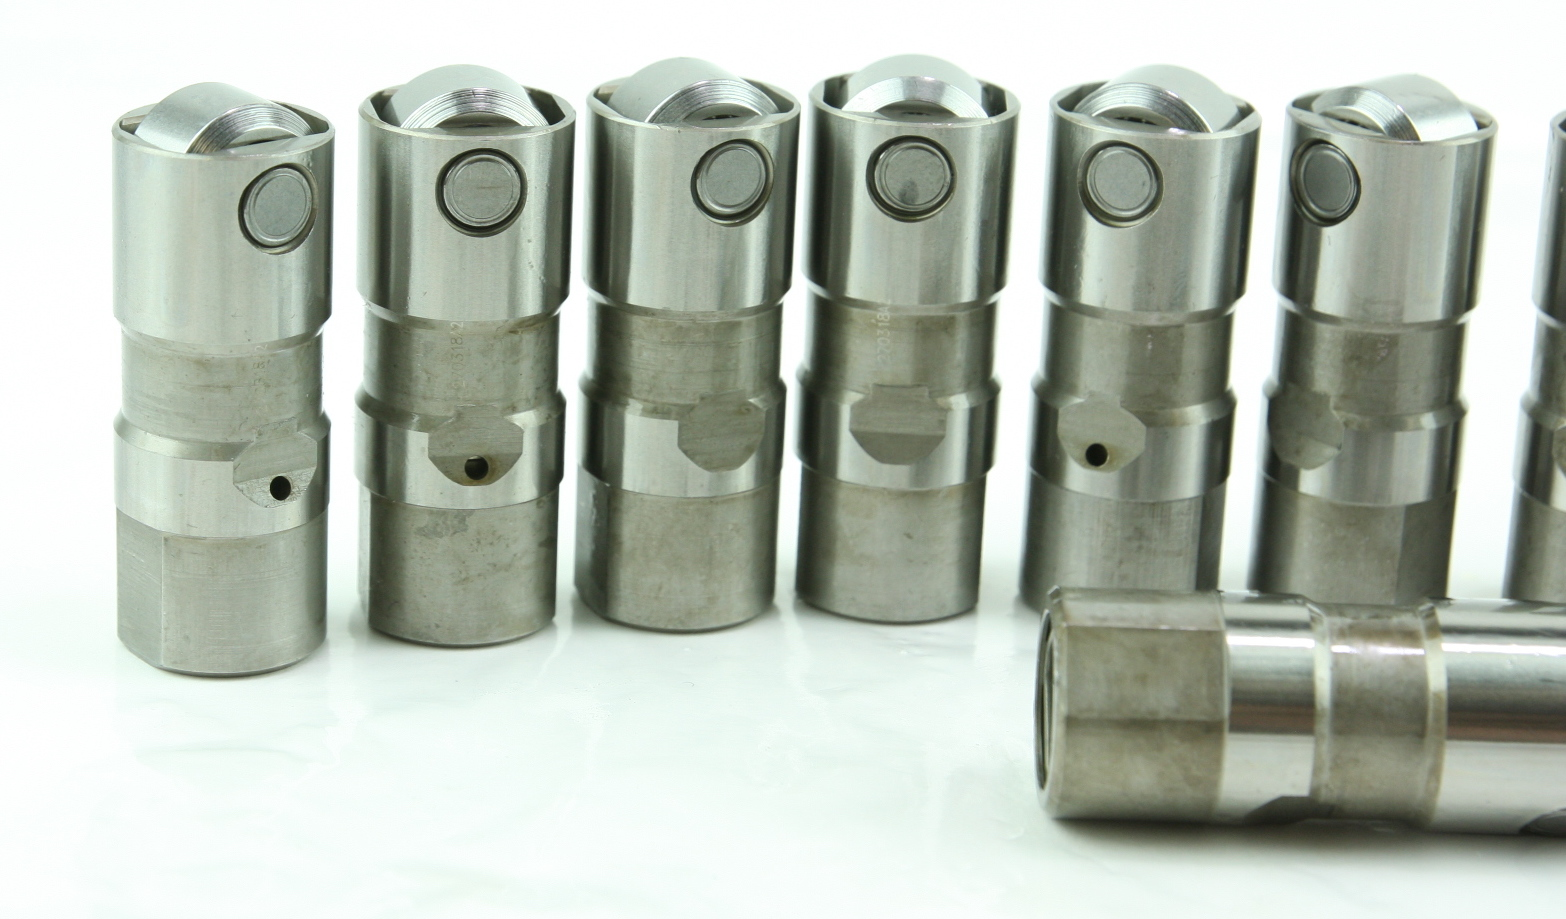 Set of 12 Genuine GM Roller Hydraulic Valve Lifters OEM 17120070 ACDelco HL118 - image 2